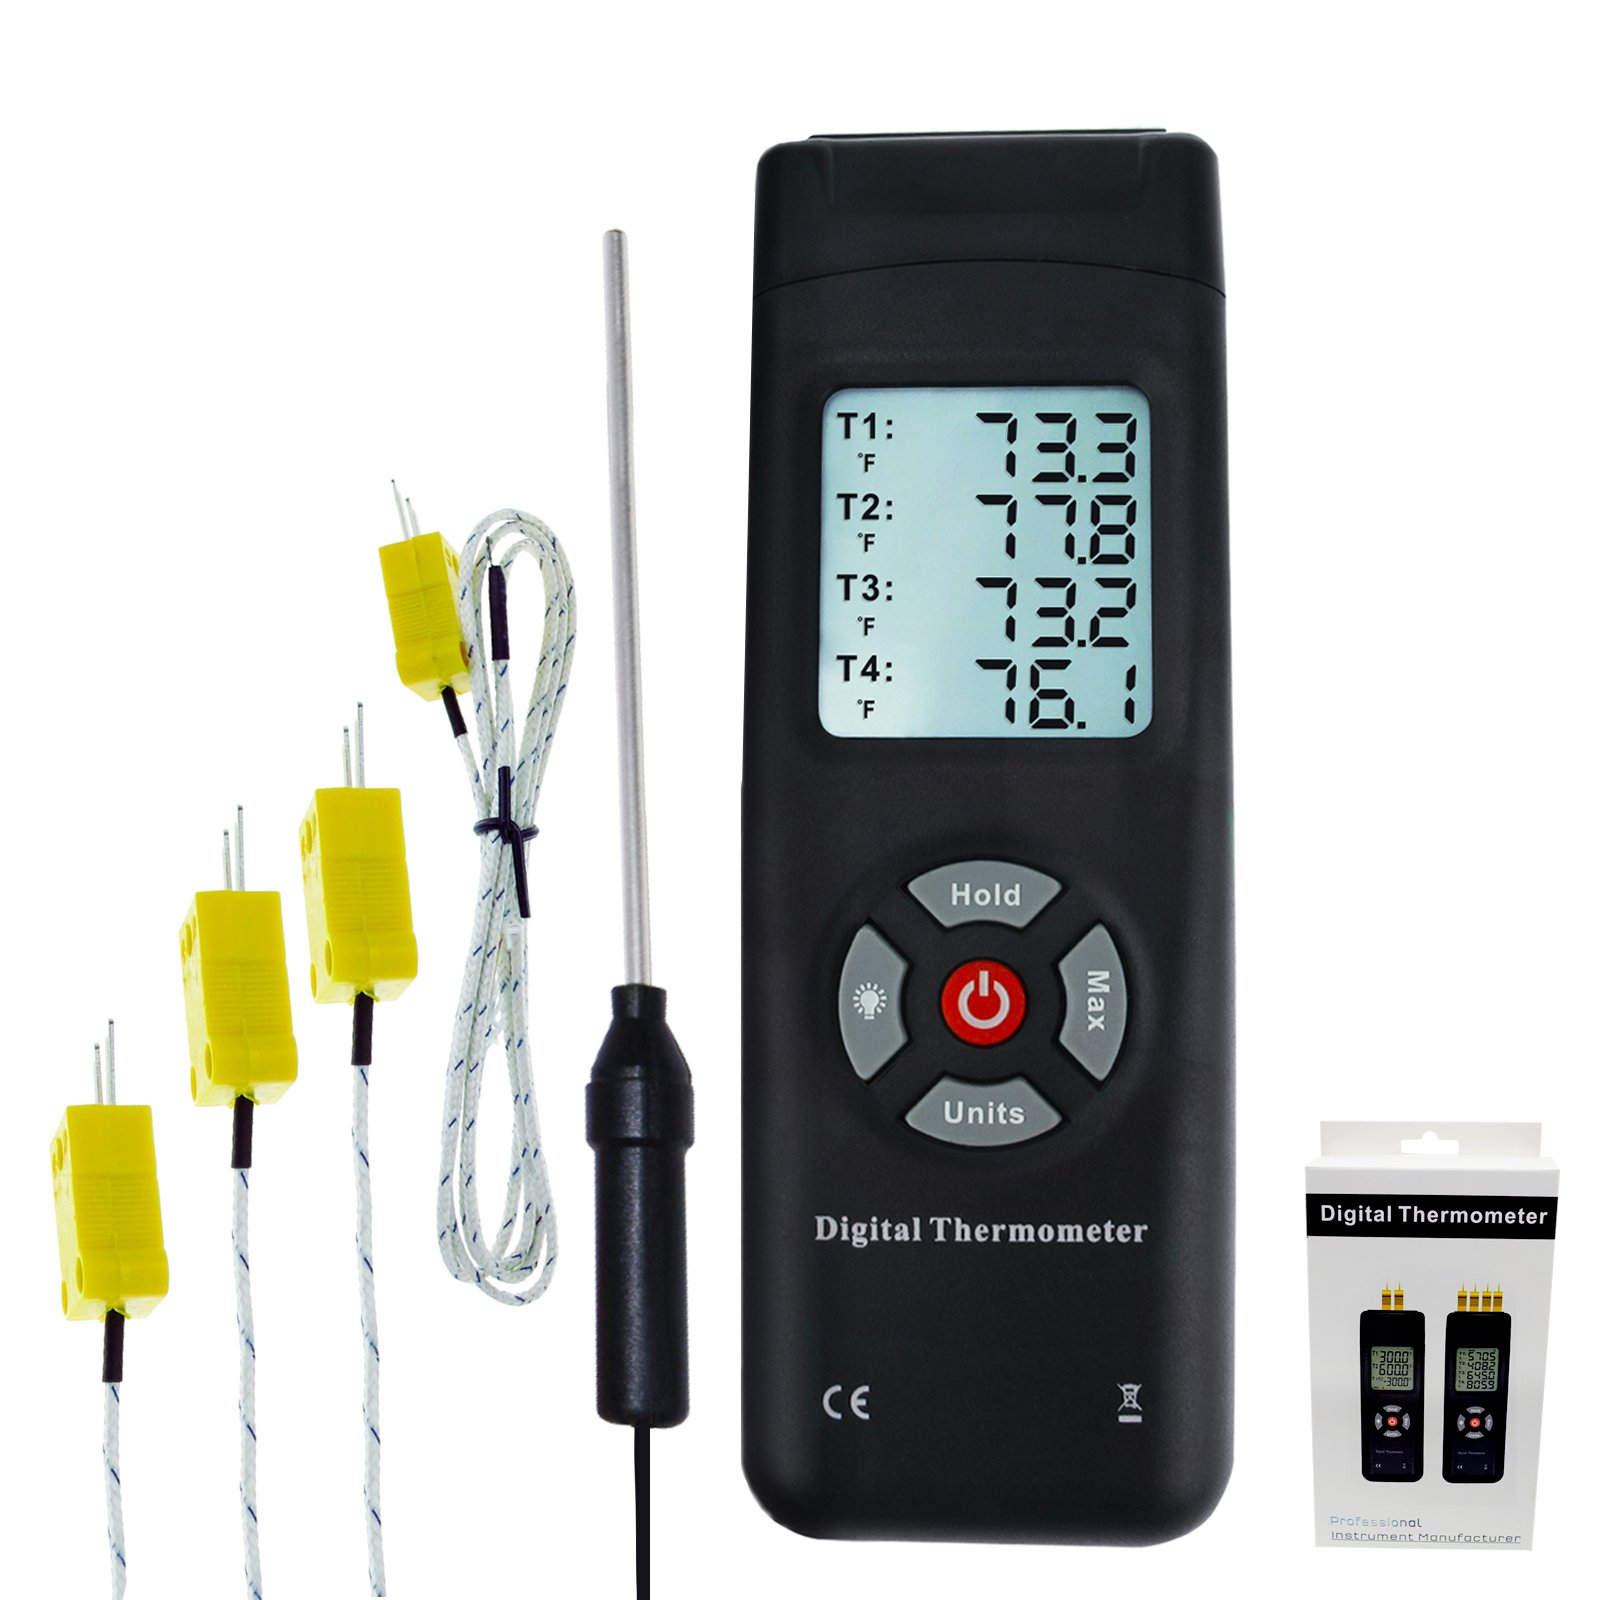 Thermometer 4 Channels K-Type Thermocouple sensor tester with K-Type Metal & Bead Probe Backlight Temperature Instrument -50~1350°C (-58~2462°F) Max/Min/Avg reading Data Log Storage Recording Function by TekcoPlus